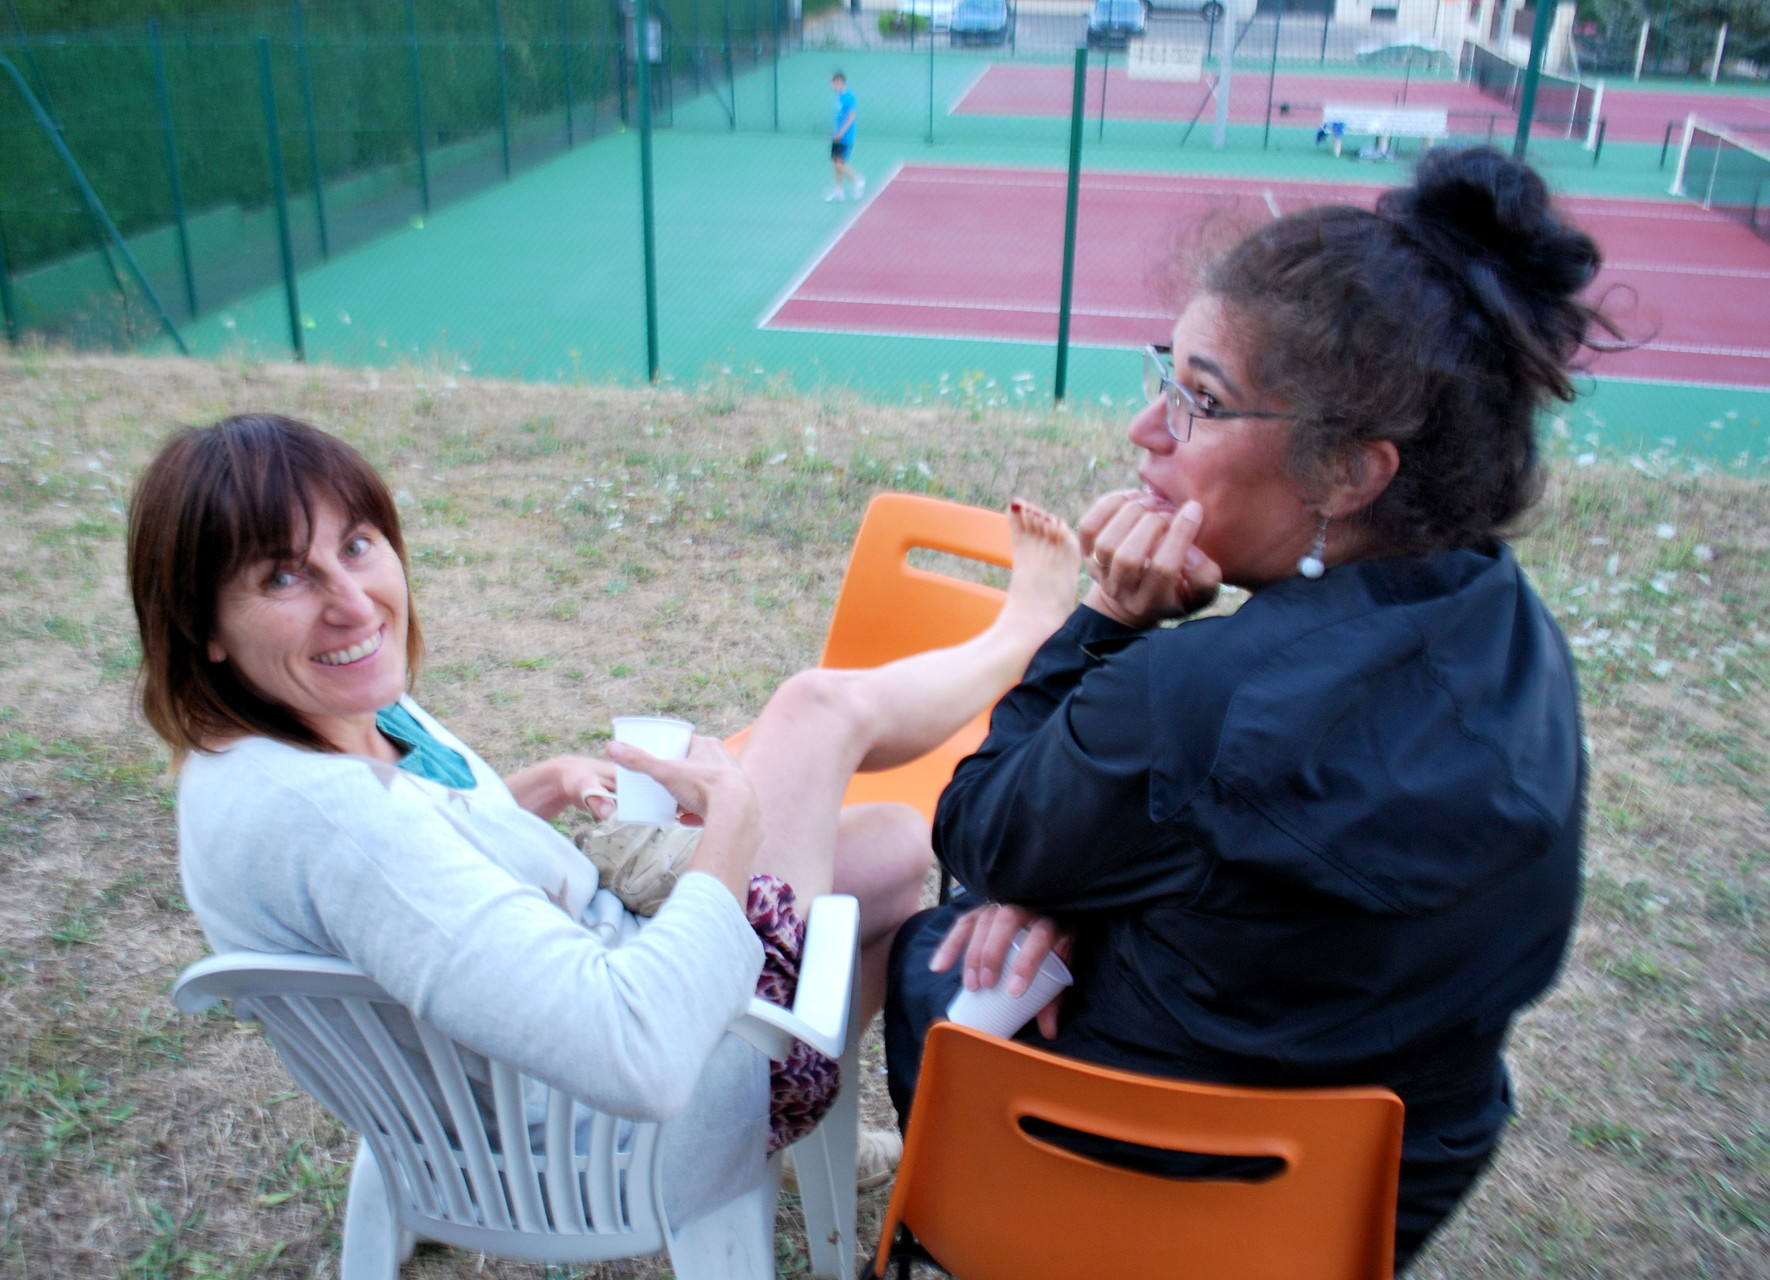 Agnès et Fernanda, made in Bouilly, supportrices éblouies...